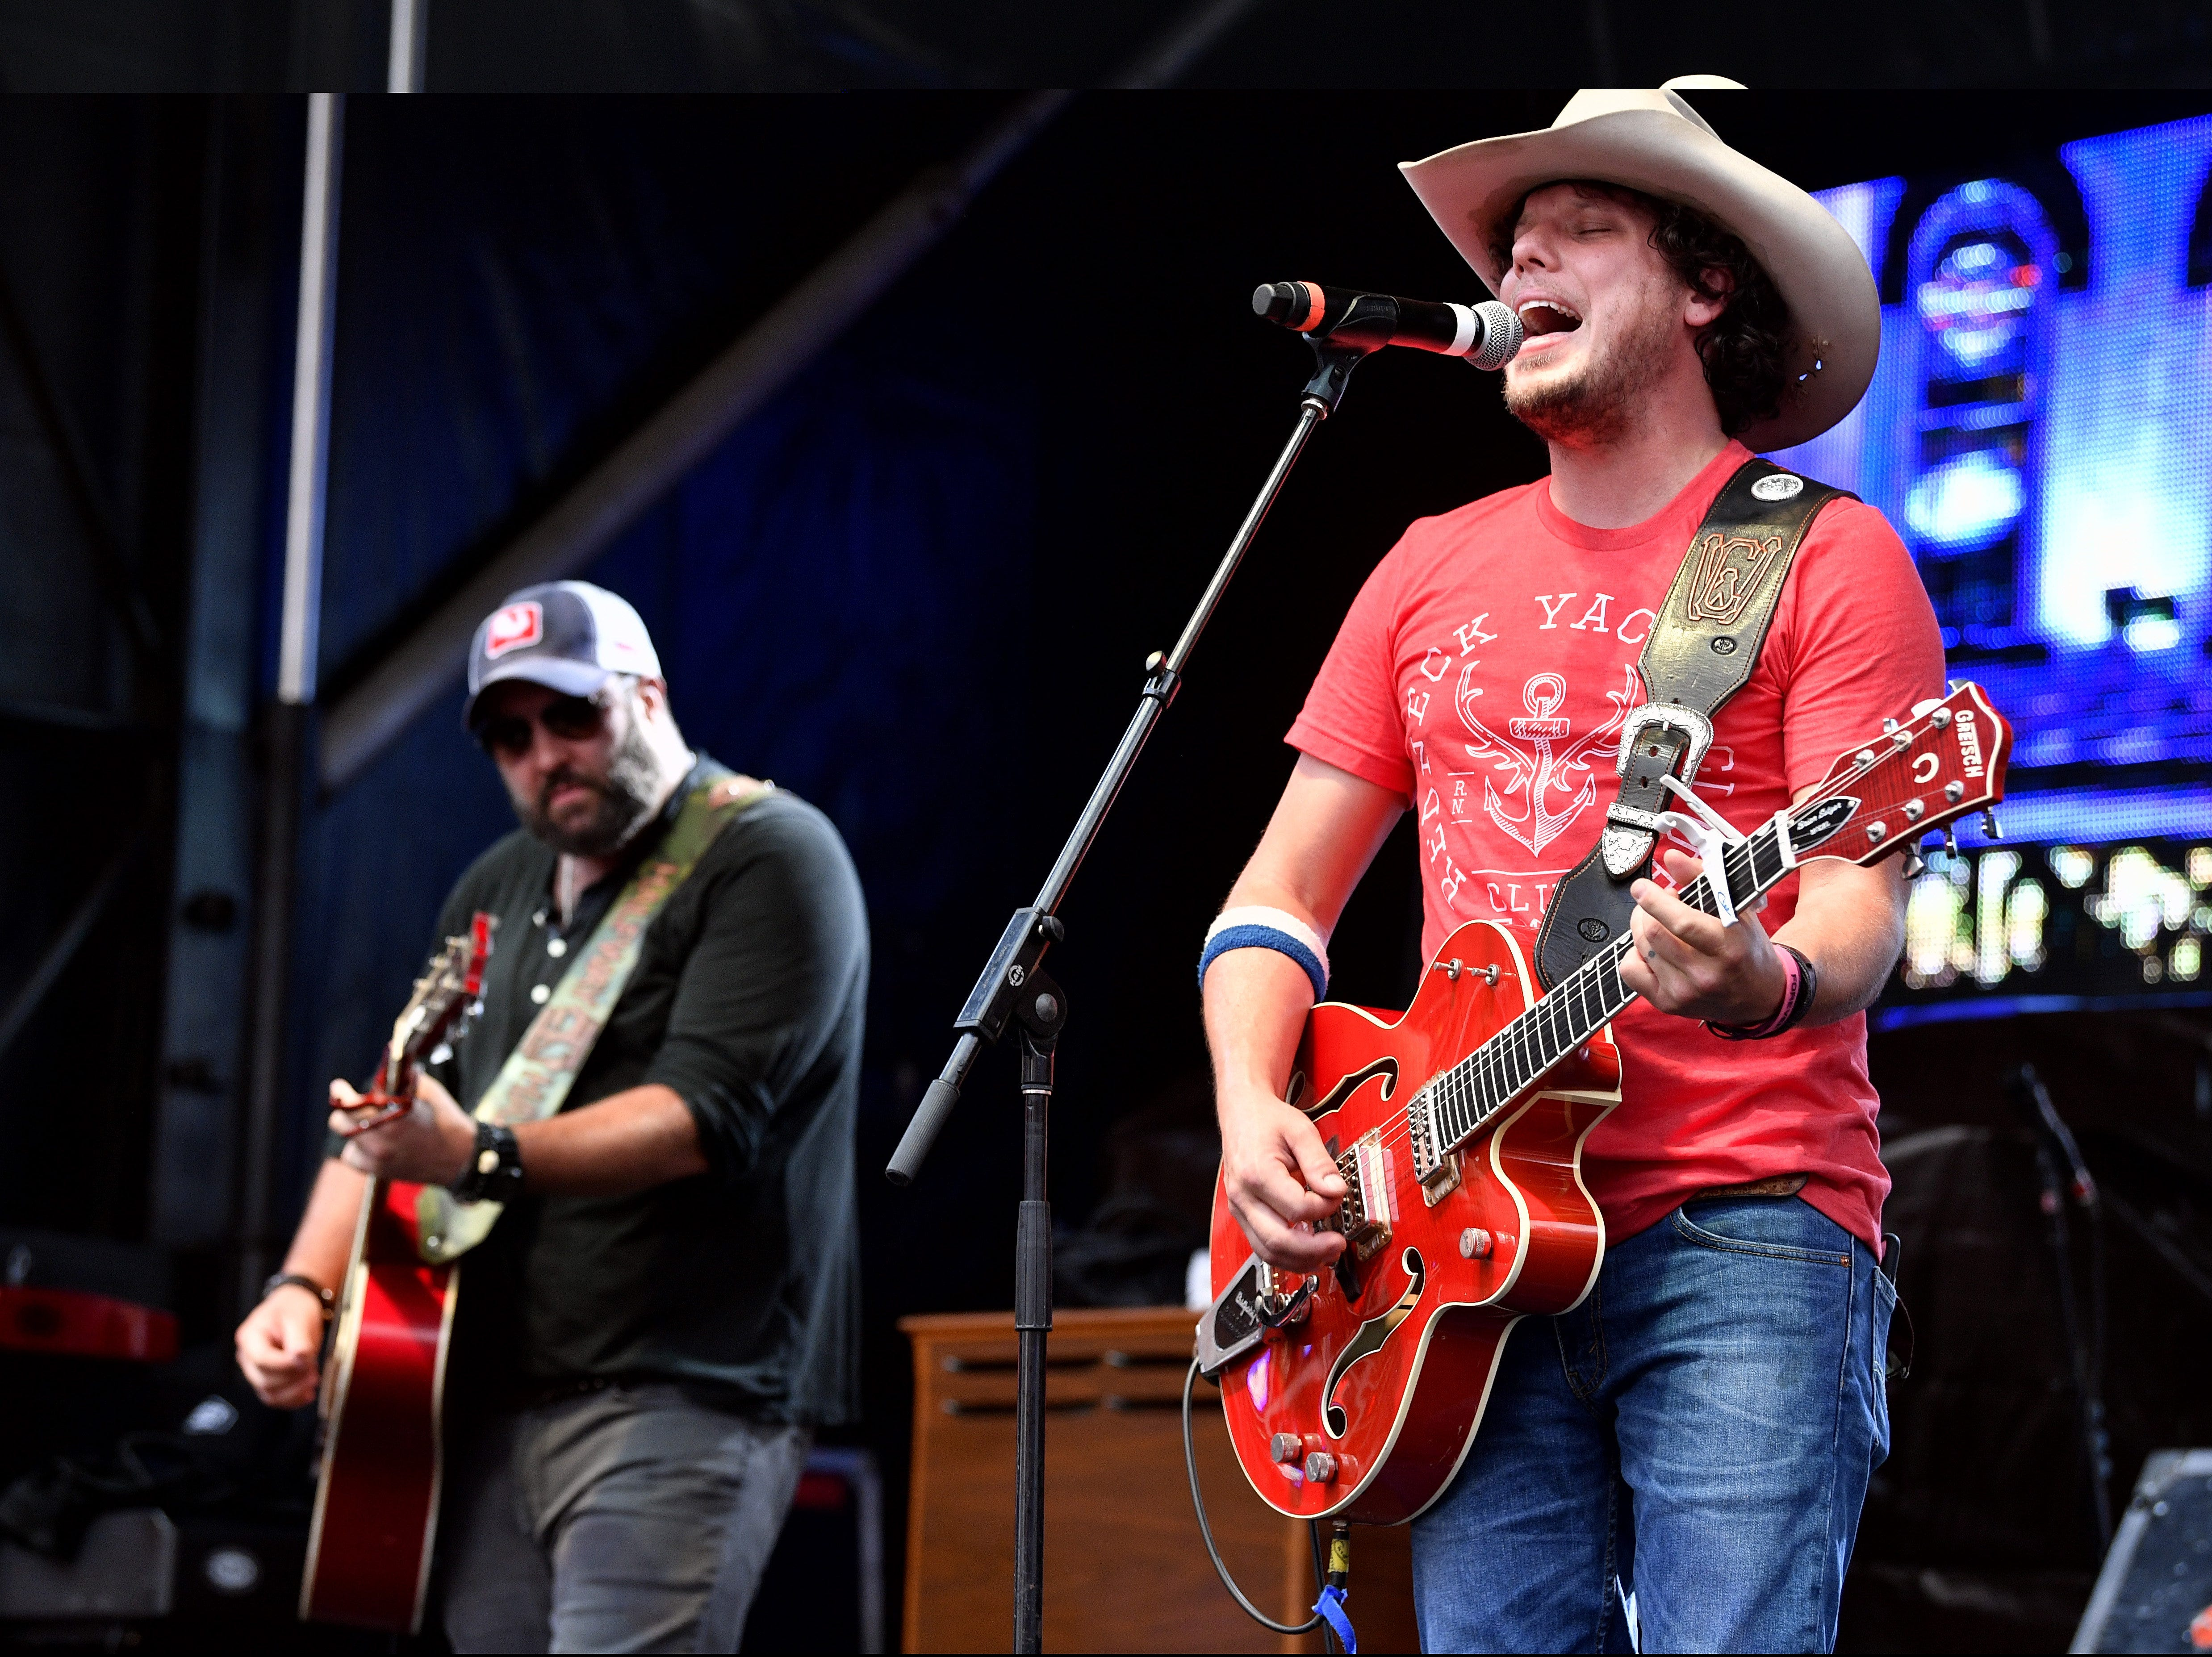 Halfway to Hazard is scheduled to play the Budweiser Forever Country Stage at CMA Fest 2019.